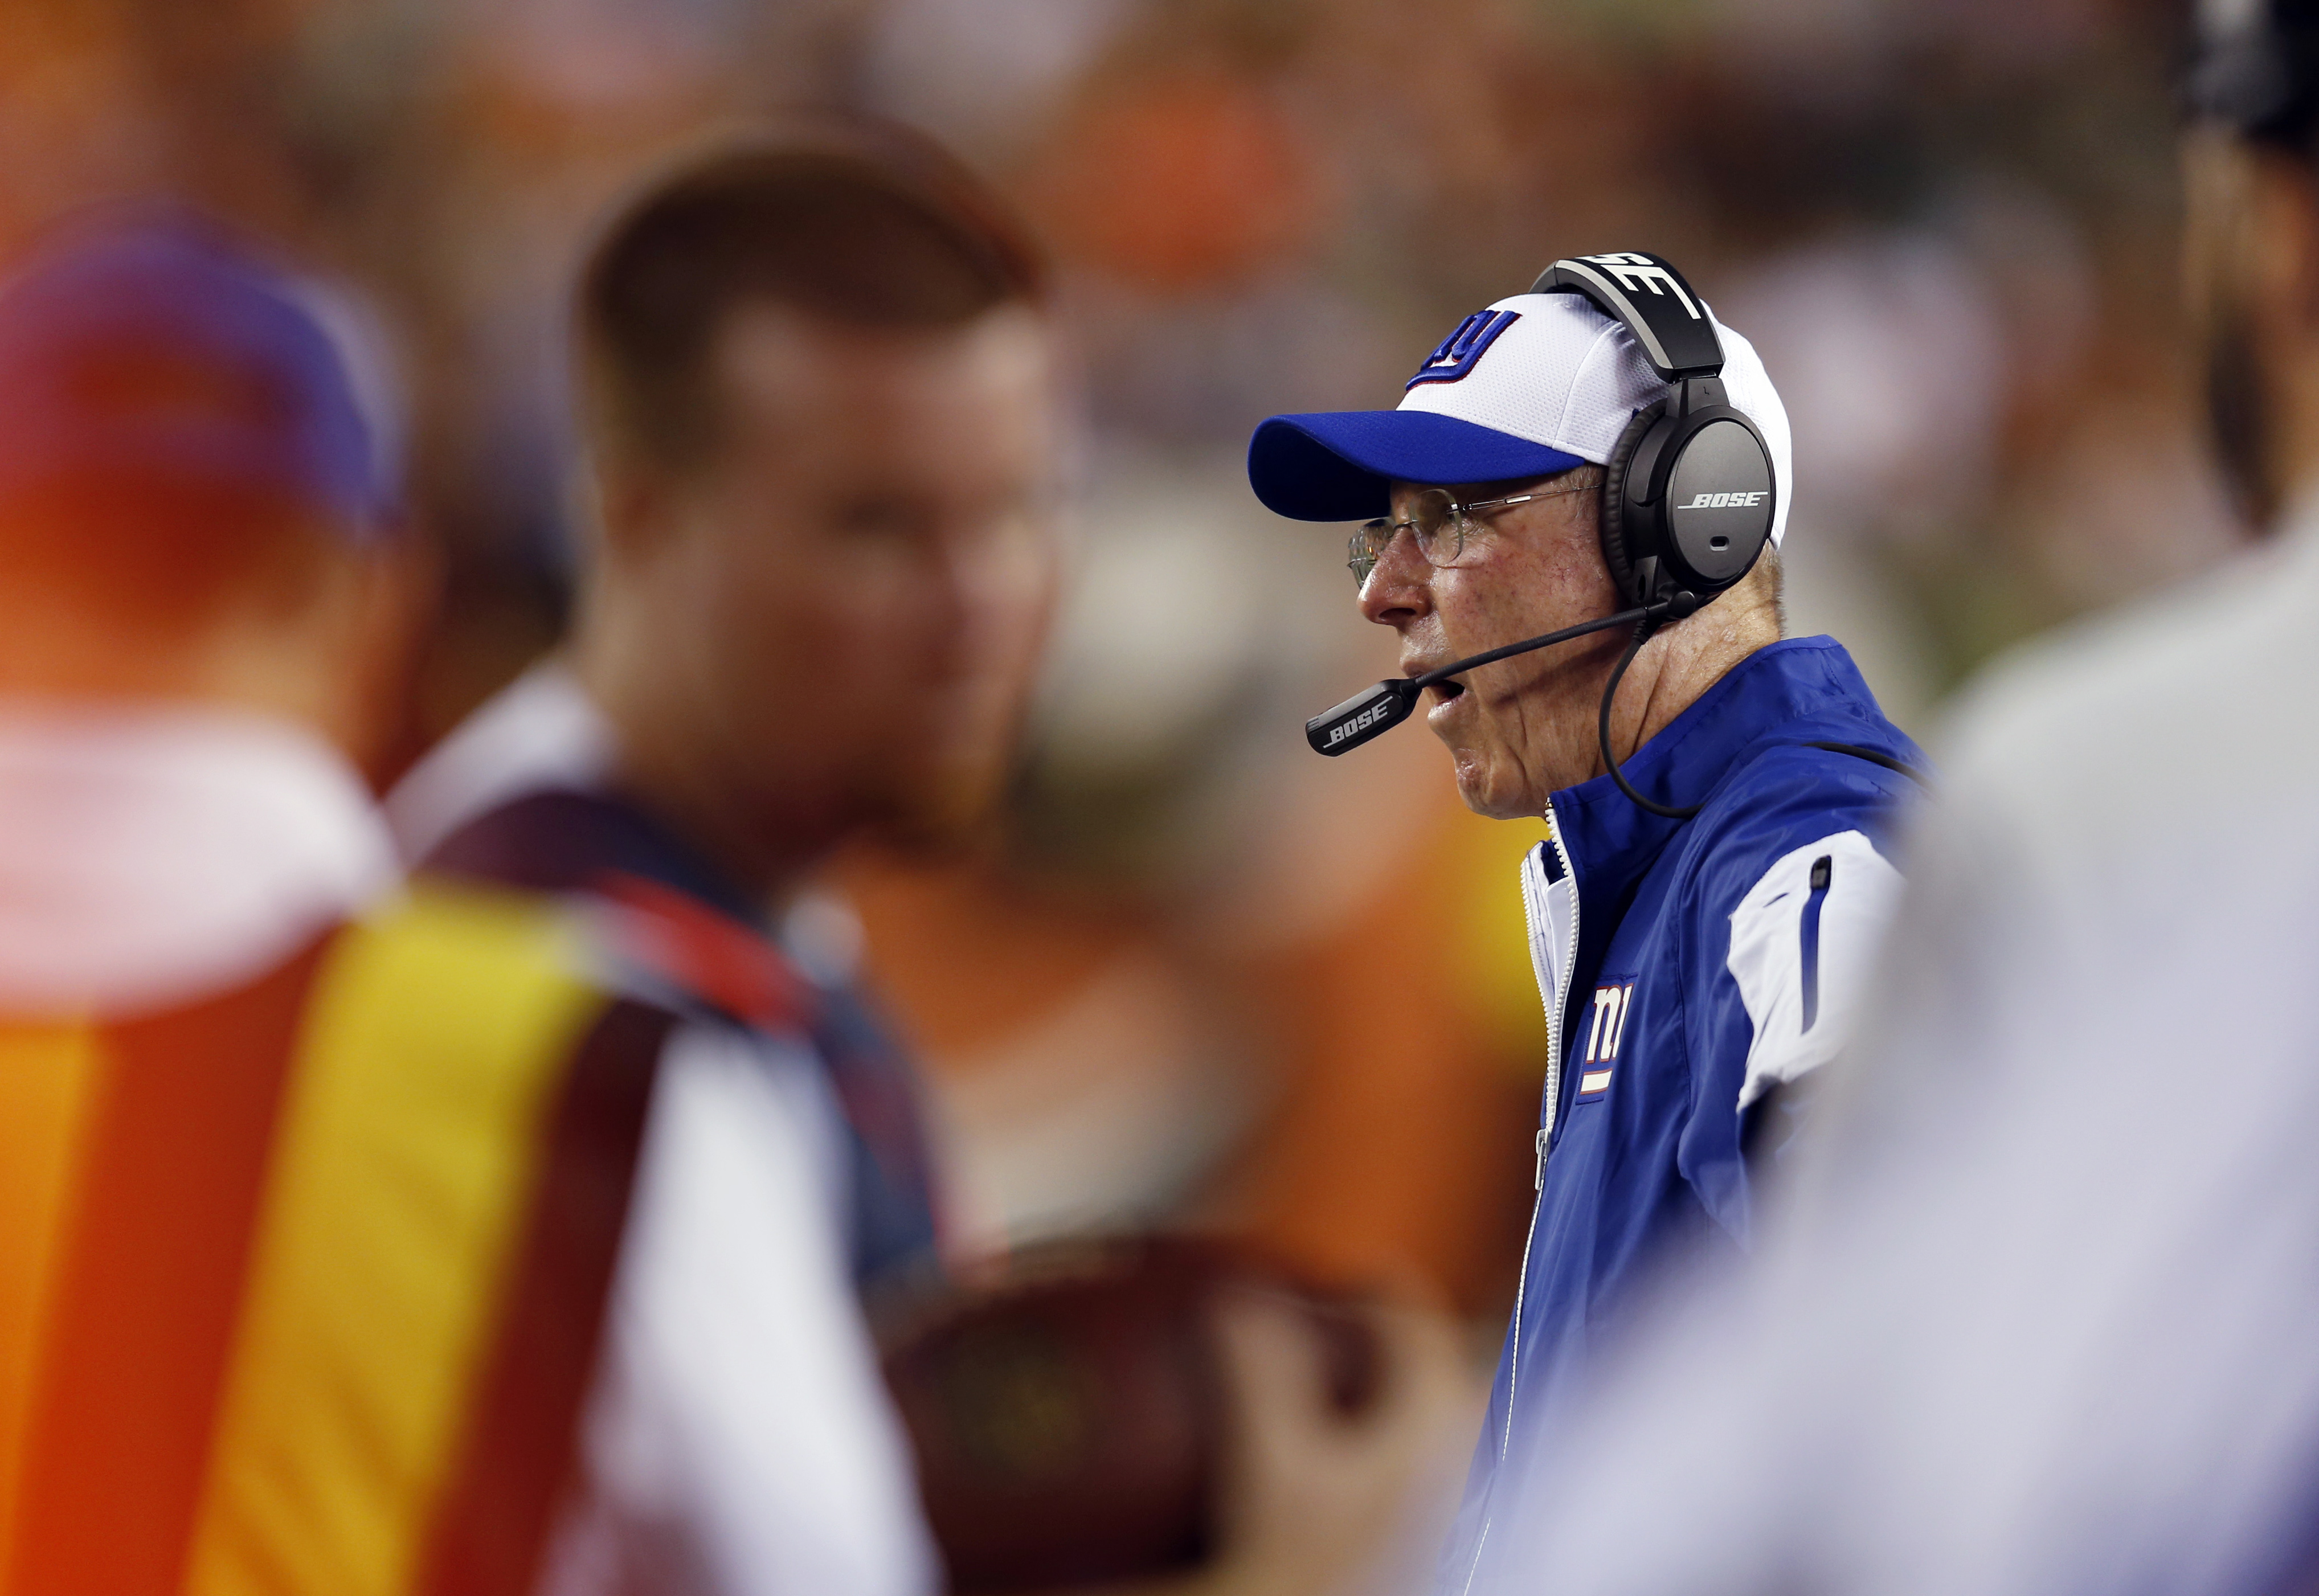 New York Giants coach Tom Coughlin yells from the sideline during the first half of the Giants' NFL preseason football game against the Cincinnati Bengals in Cincinnati, Friday, Aug. 14, 2015. (AP Photo/Gary Landers)